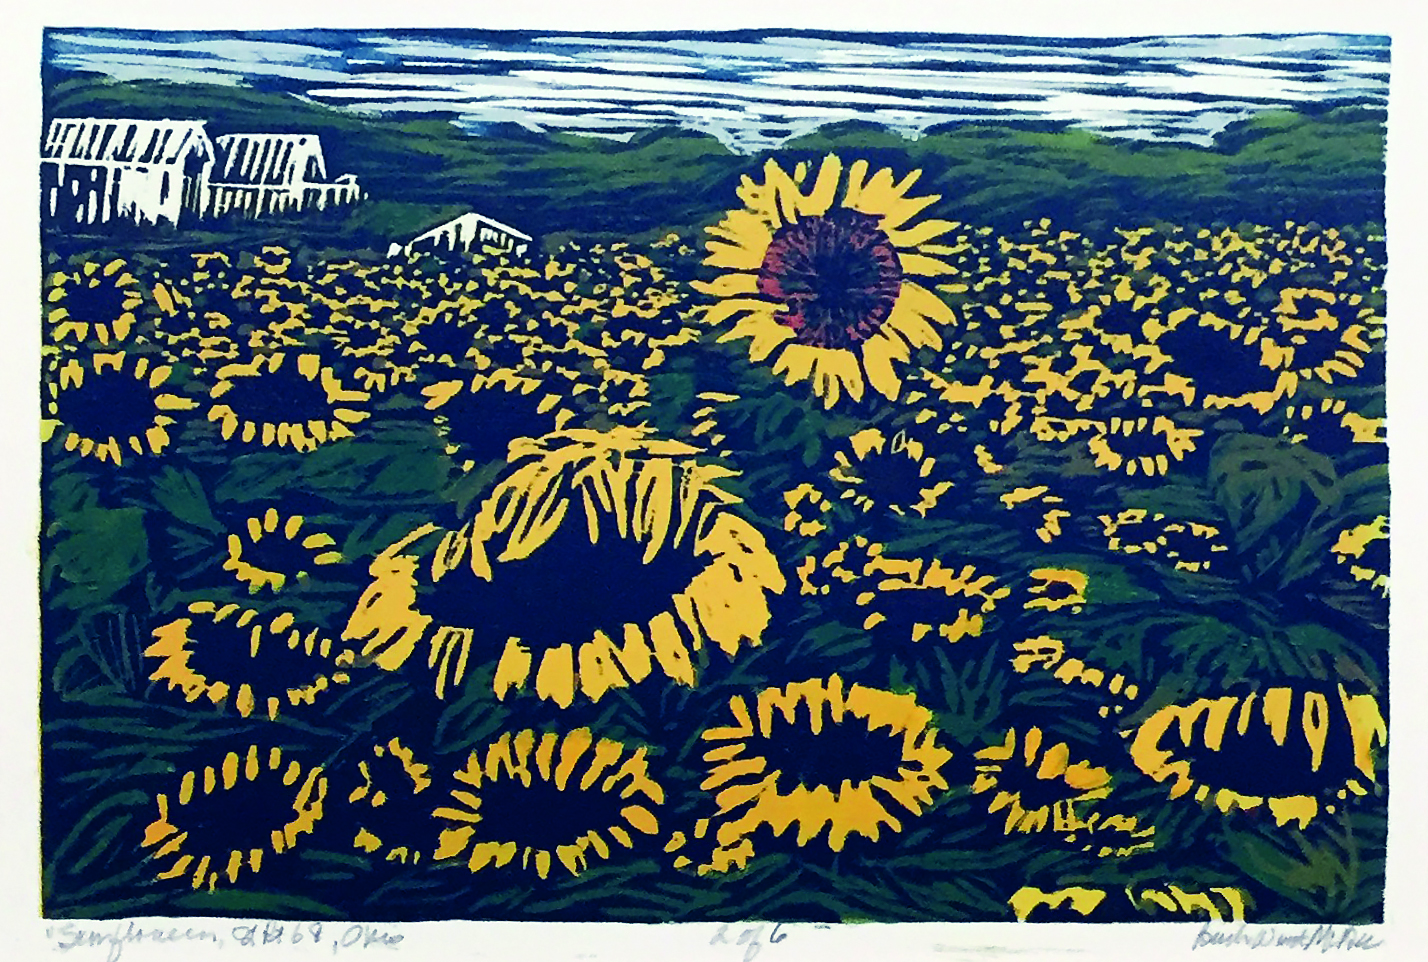 Barb Weinert-McBee | SUNFLOWERS, ST. RT. 68, OHIO | Wood Relief